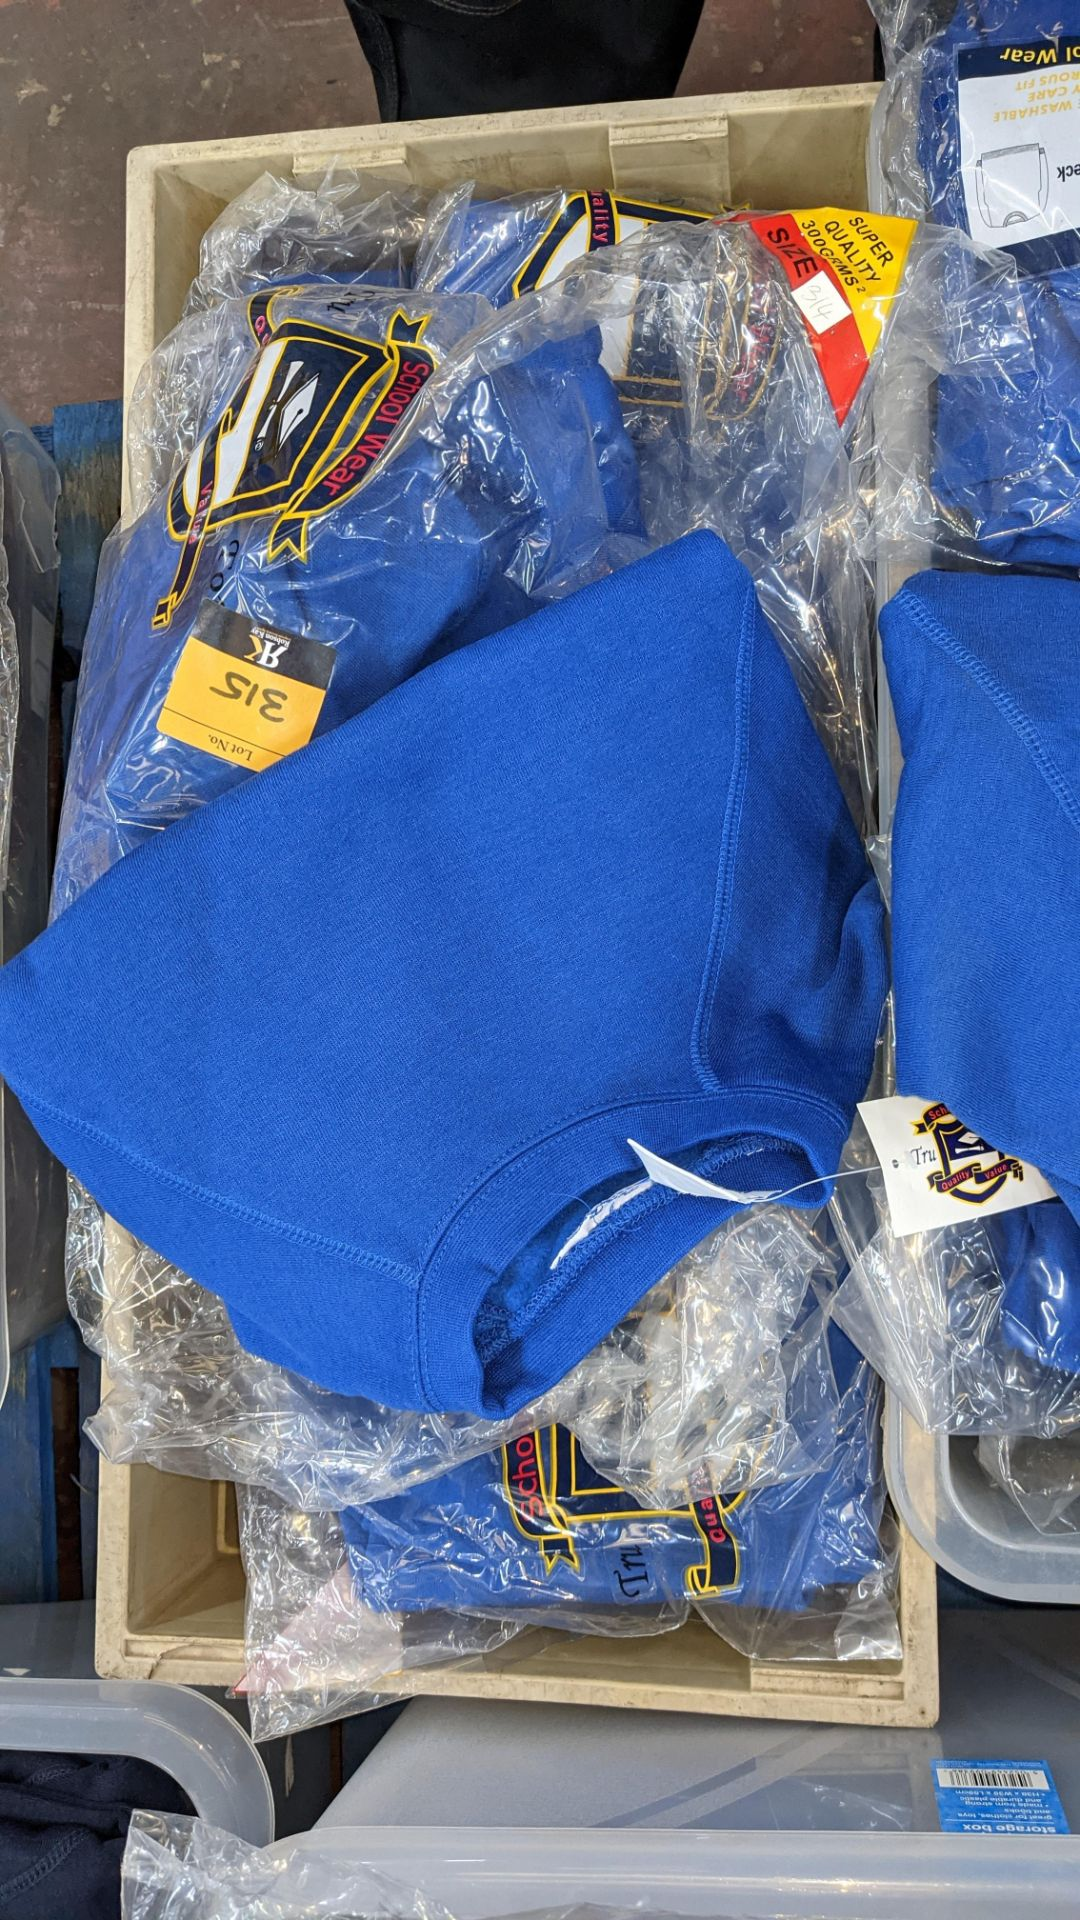 Approx 17 off blue children's sweatshirts & similar - the contents of 1 crate. NB crate excluded - Image 5 of 6